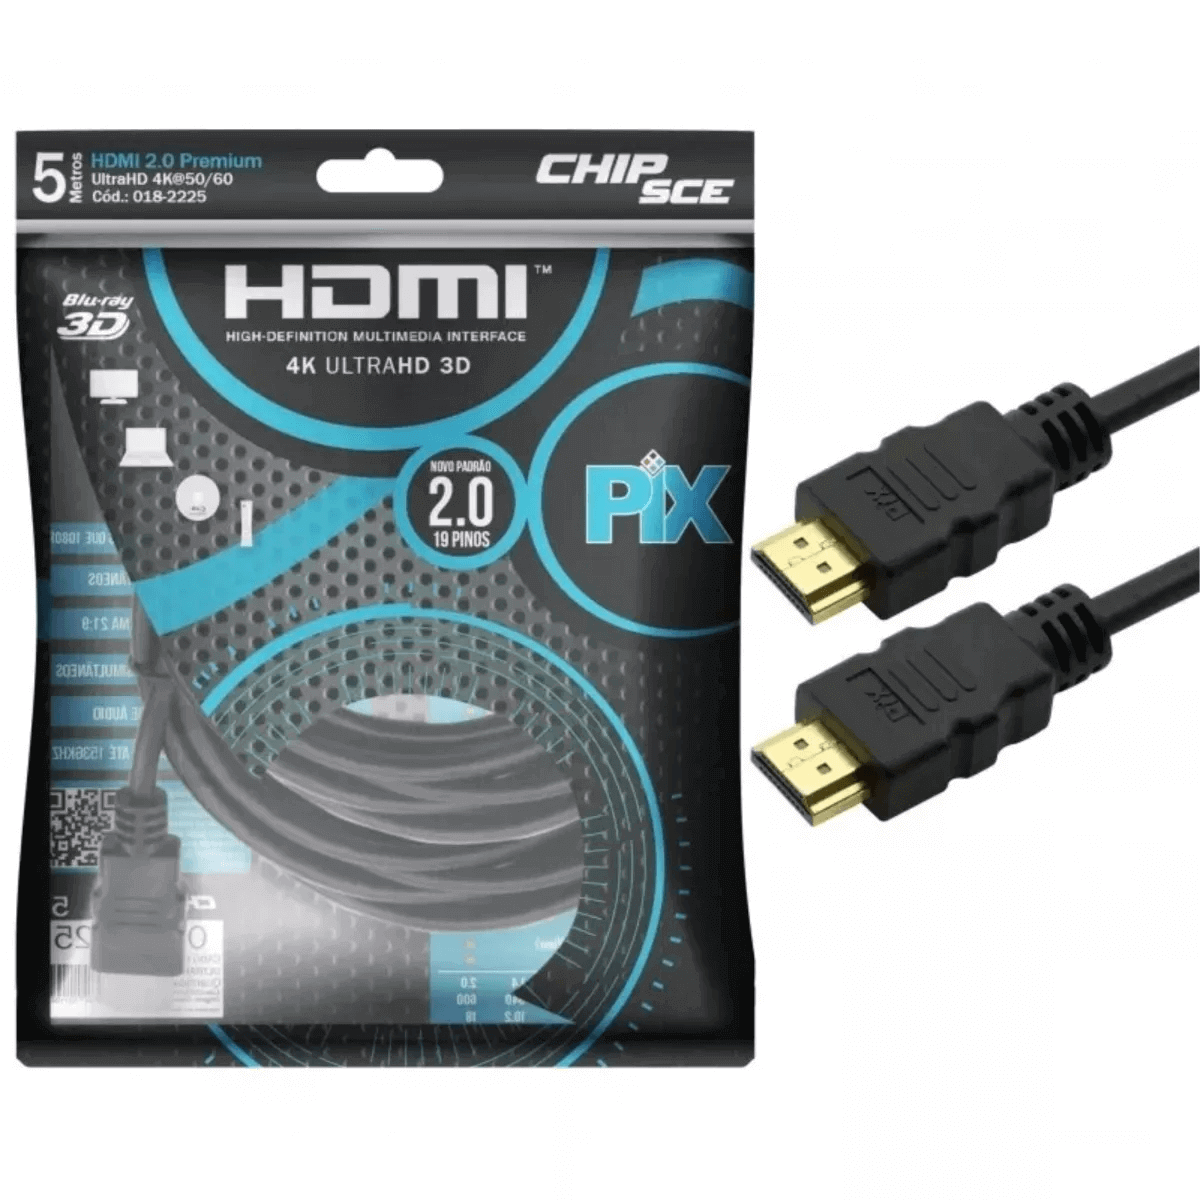 Kit 3 Cabo Hdmi 2.0 4k Hdr 3d 19 Pino 5m Pix Chip Sce